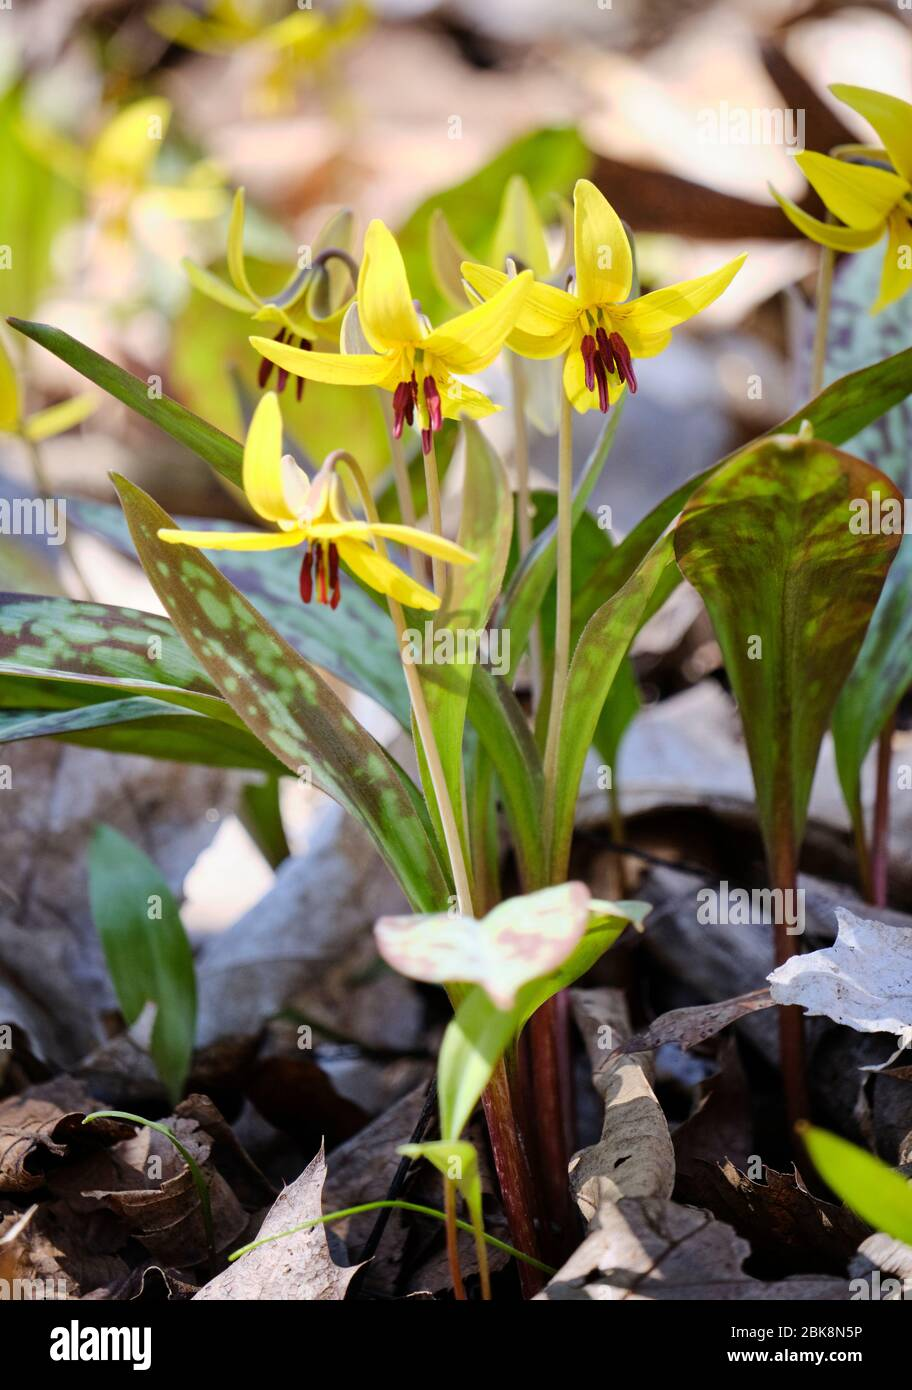 bunch-of-yellow-trout-lily-erythronium-americanum-in-bloom-on-forest-floor-2BK8N5P.jpg